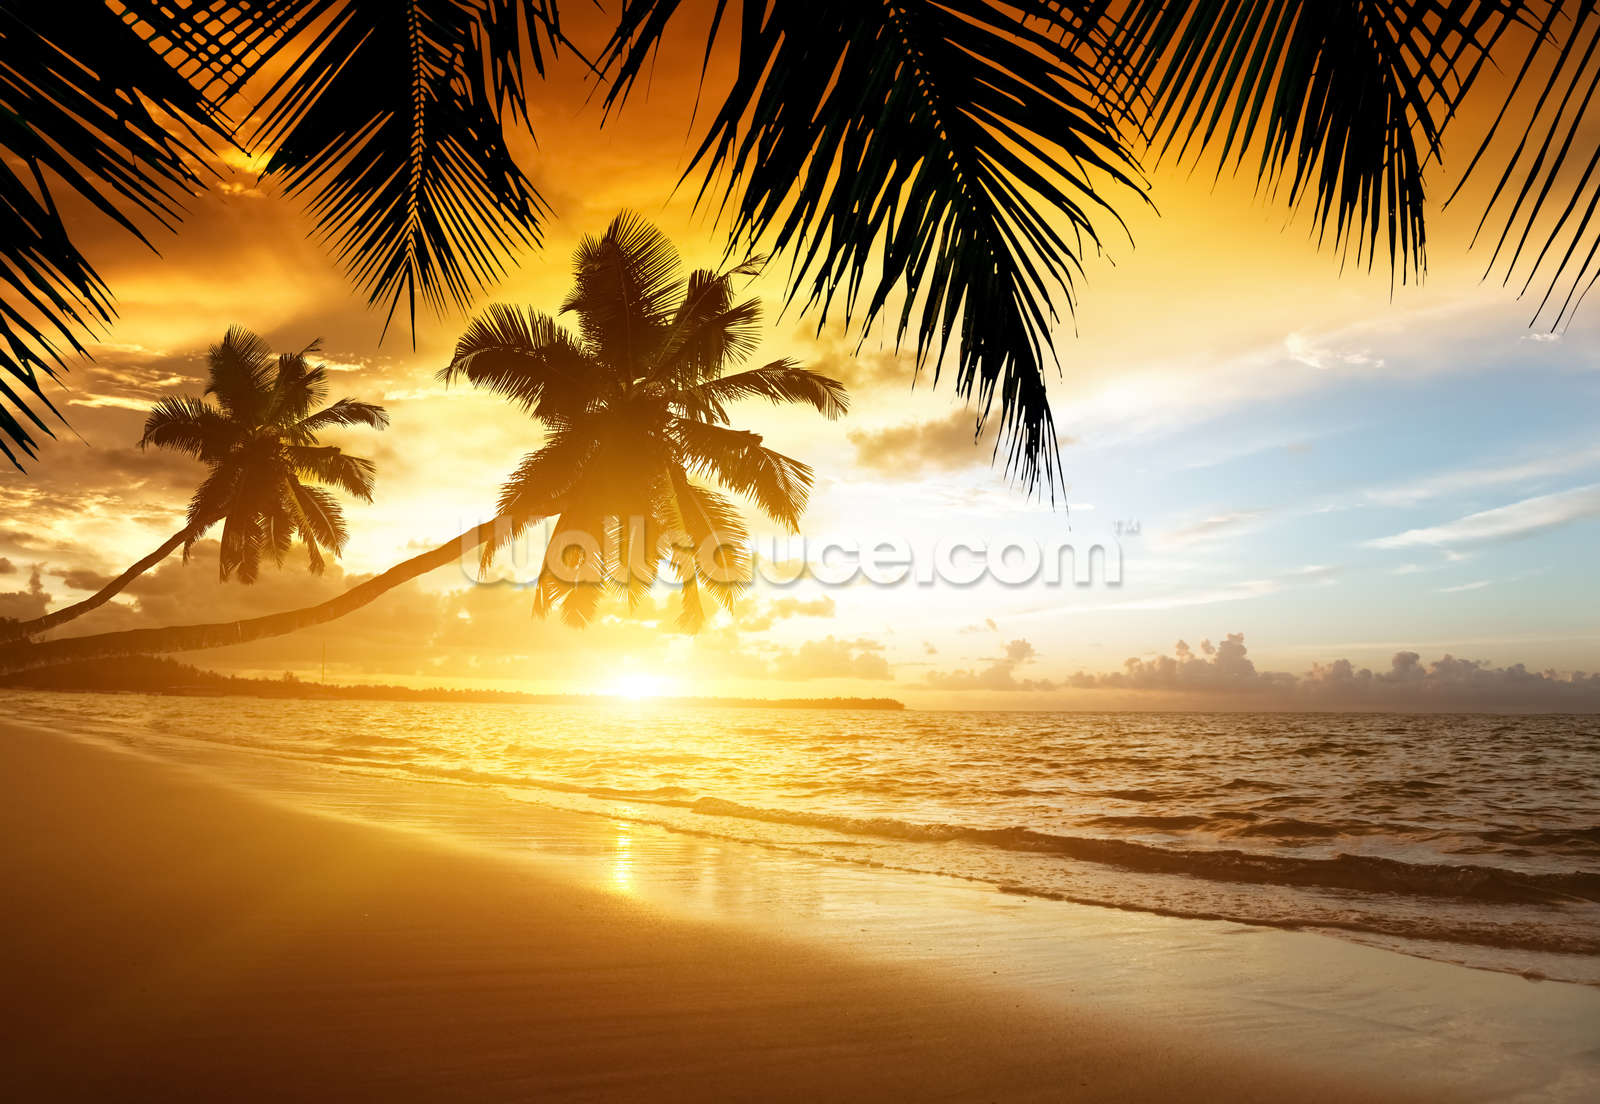 Caribbean sunset wallpaper wall mural wallsauce for Beach sunset mural